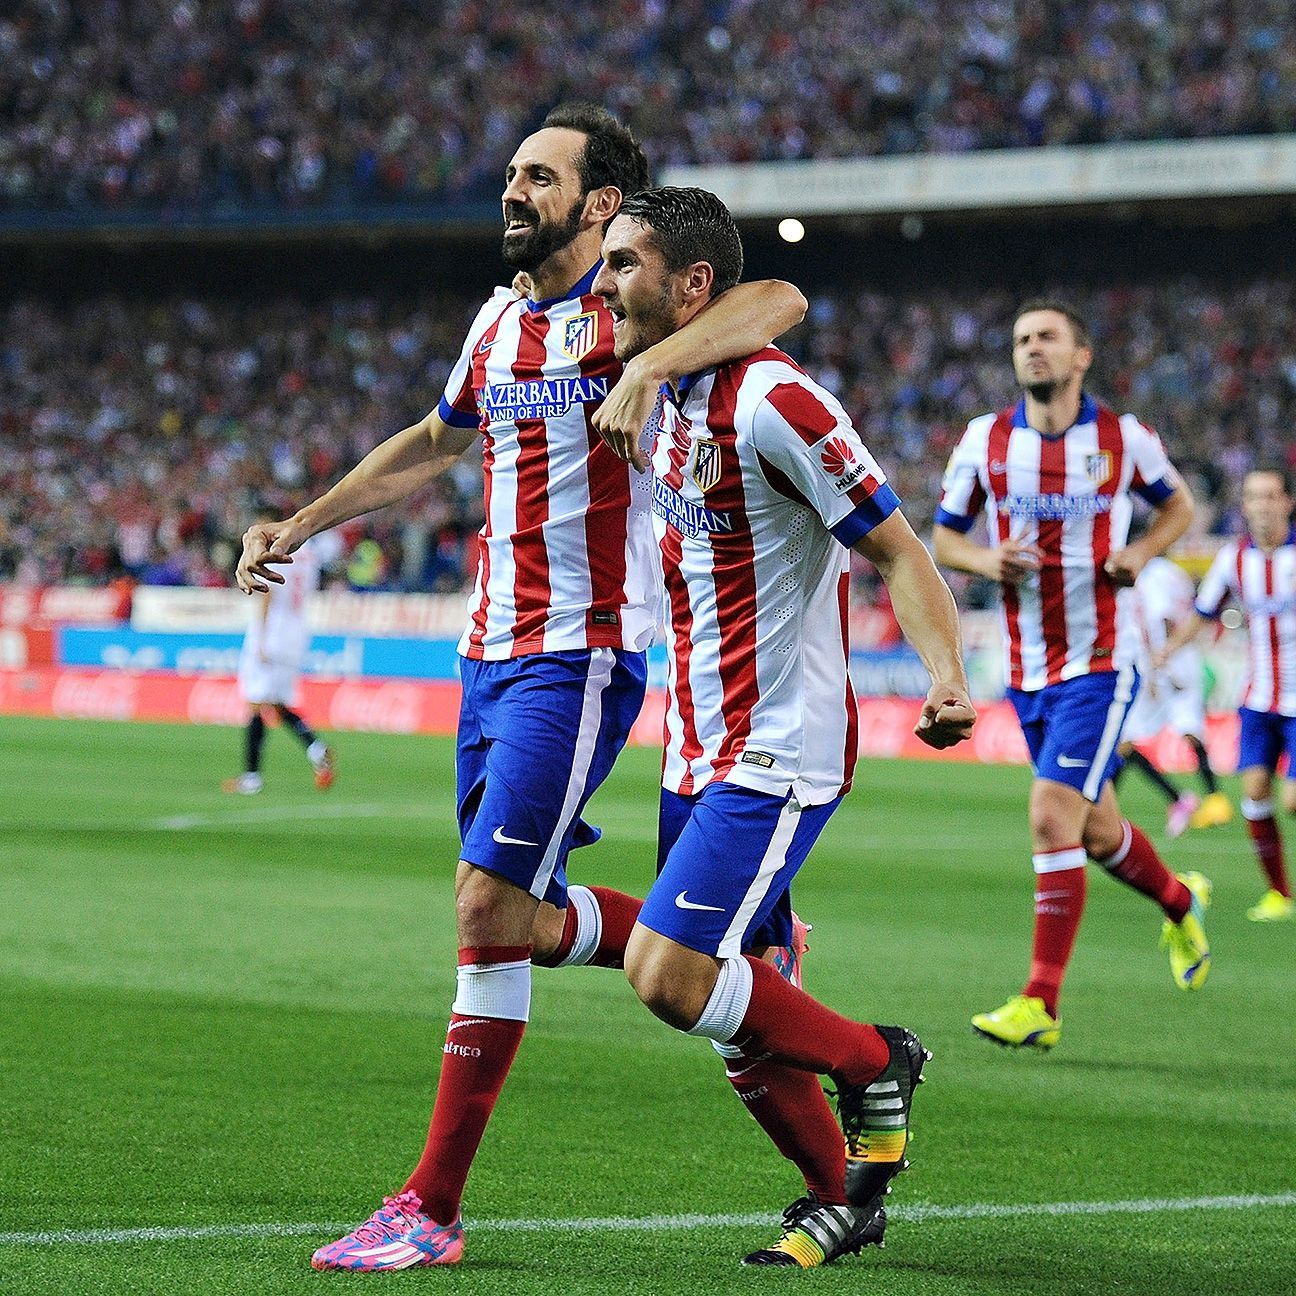 Koke, right, may be switched to a more defensive role to help protect Juanfran, left, and the rest of the Atletico back line when they meet Juventus on Thursday.